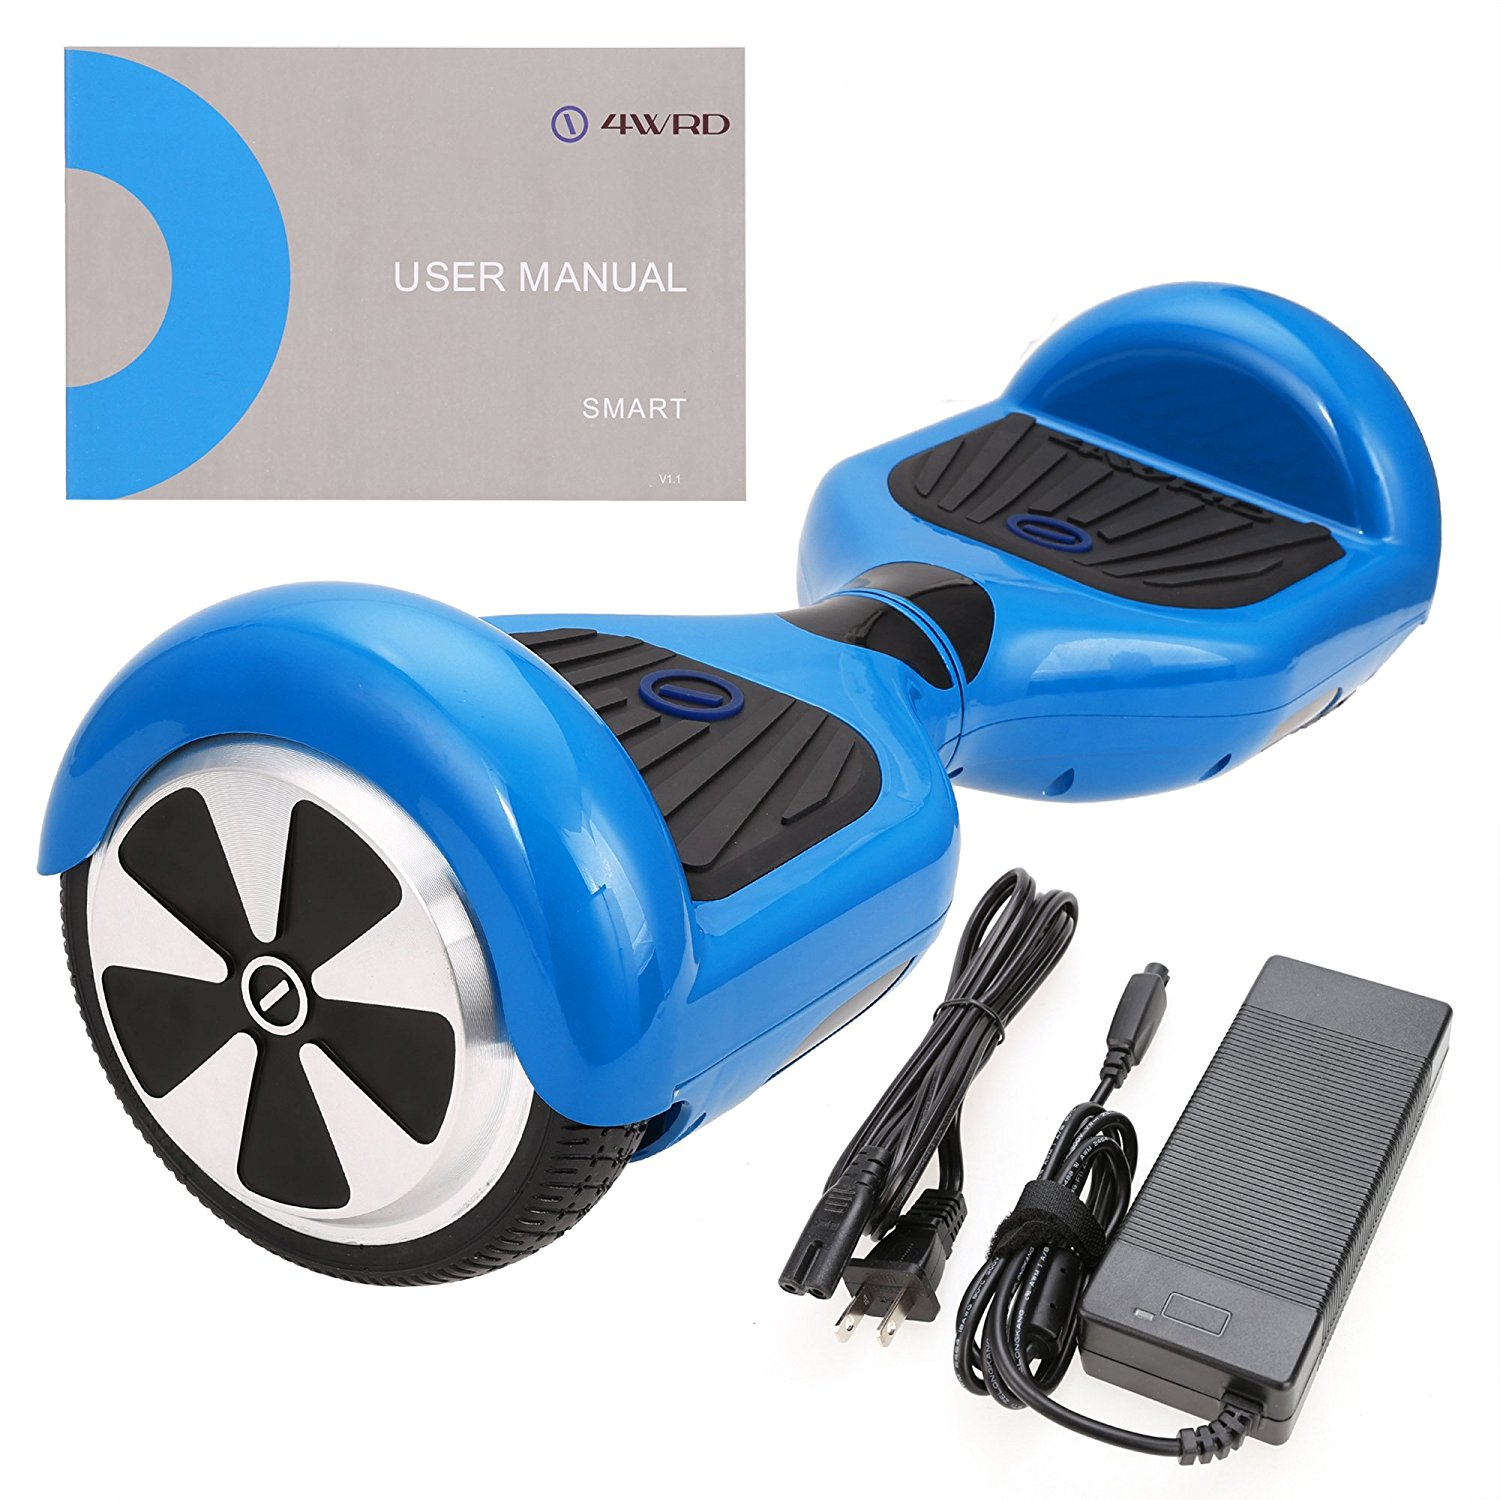 SURFUS Smart S - UL 2272 Certified Hoverboard - Electric Balance hoverboard (Blue)